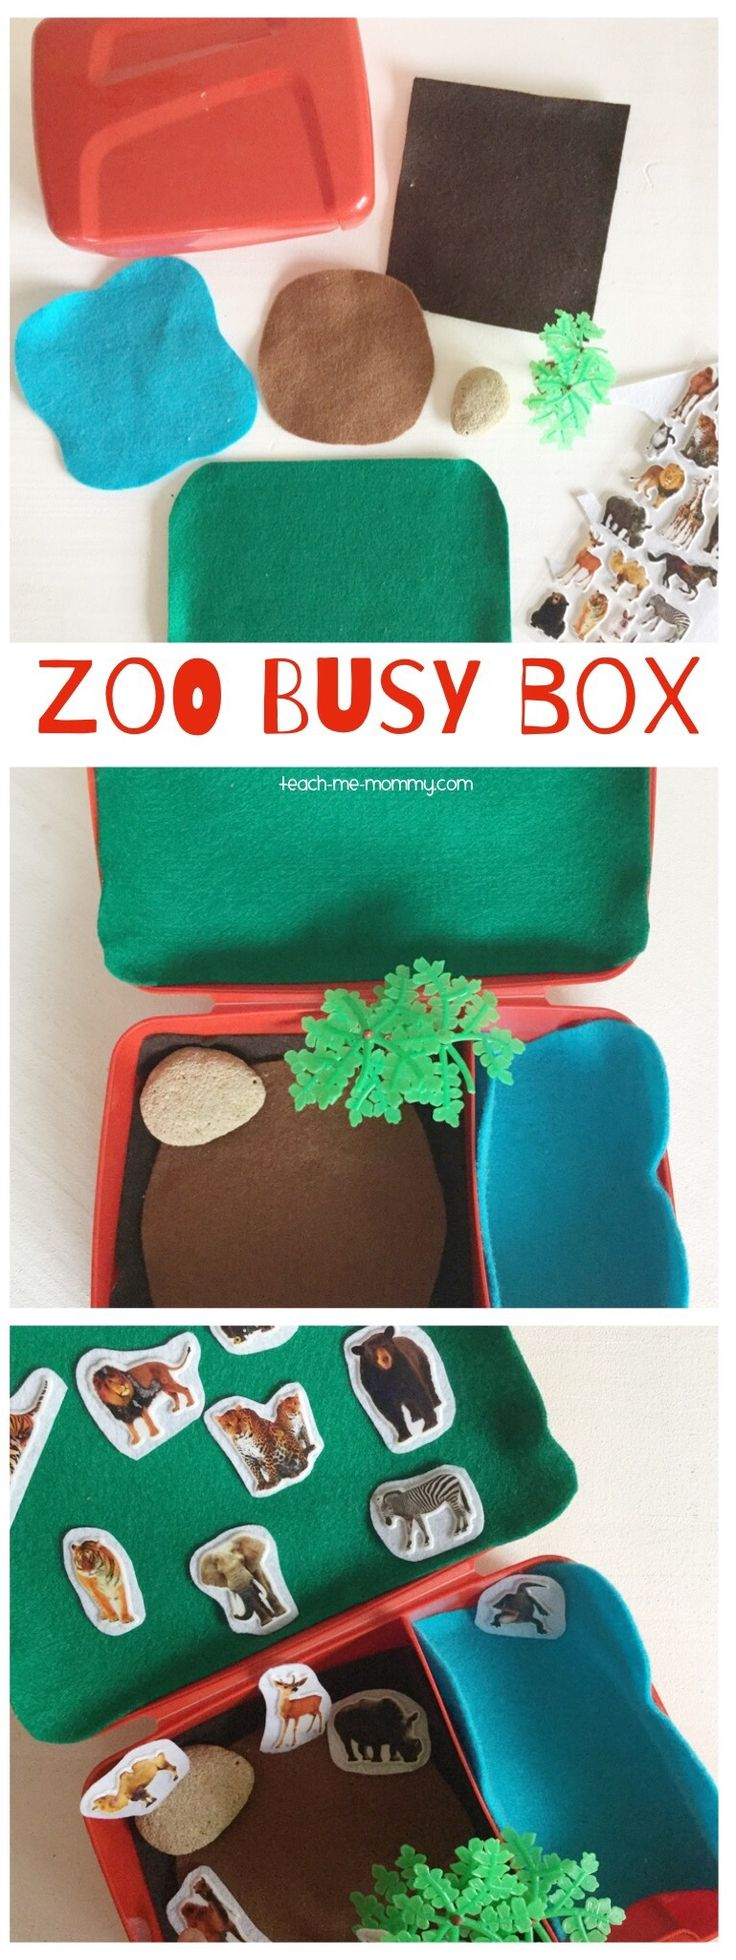 130 best Zoo Activities for Kids images on Pinterest | Baby games ...